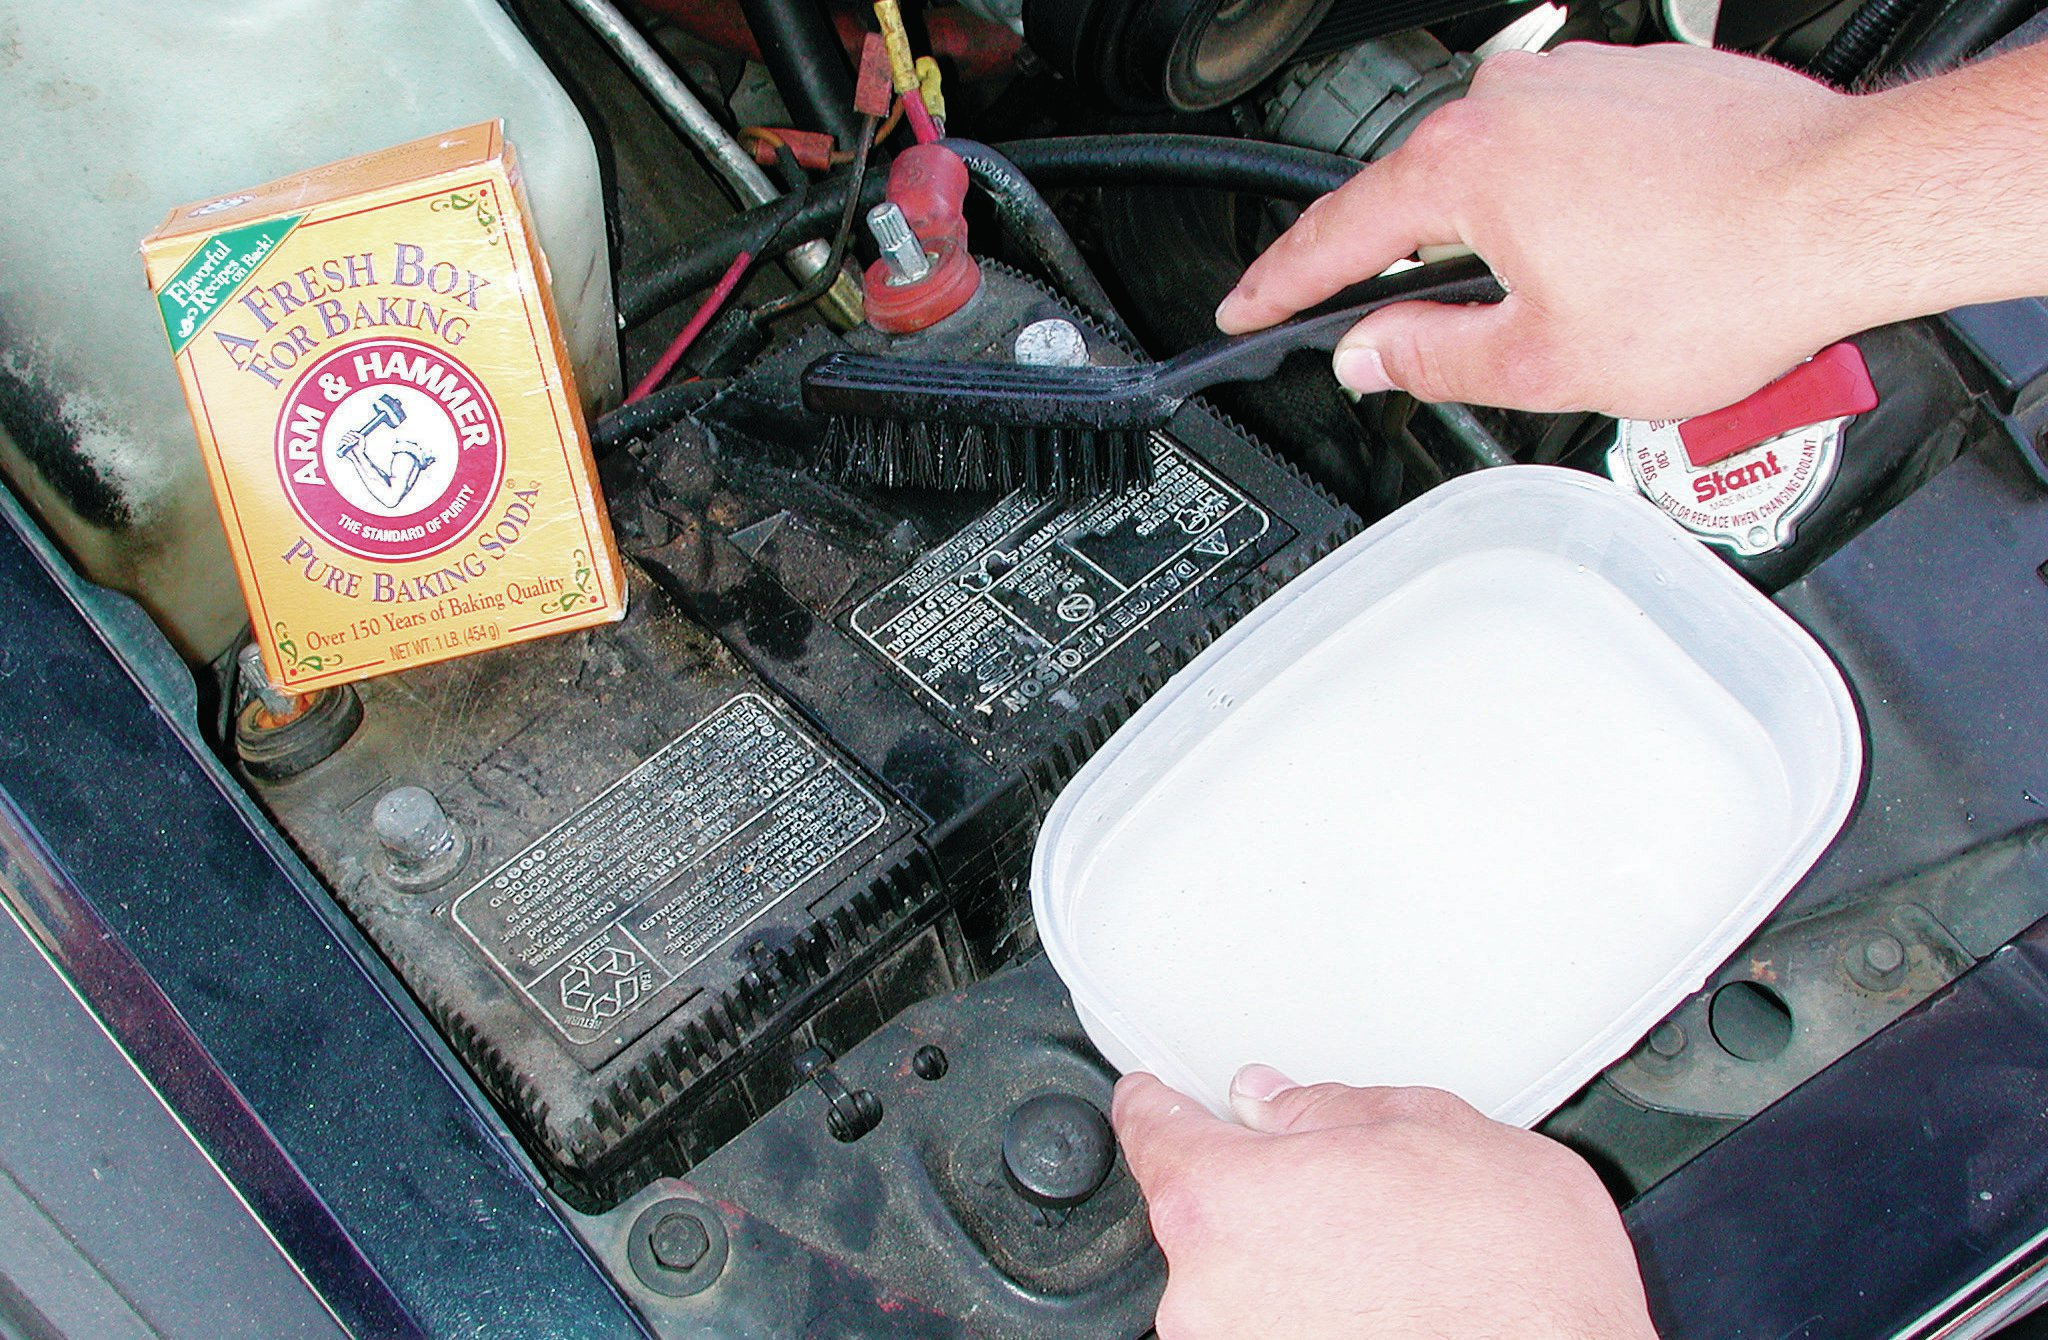 If the car's been sitting for years, there's a good chance the battery terminals are corroded. A baking soda and water solution is one method for dissolving all the grime.